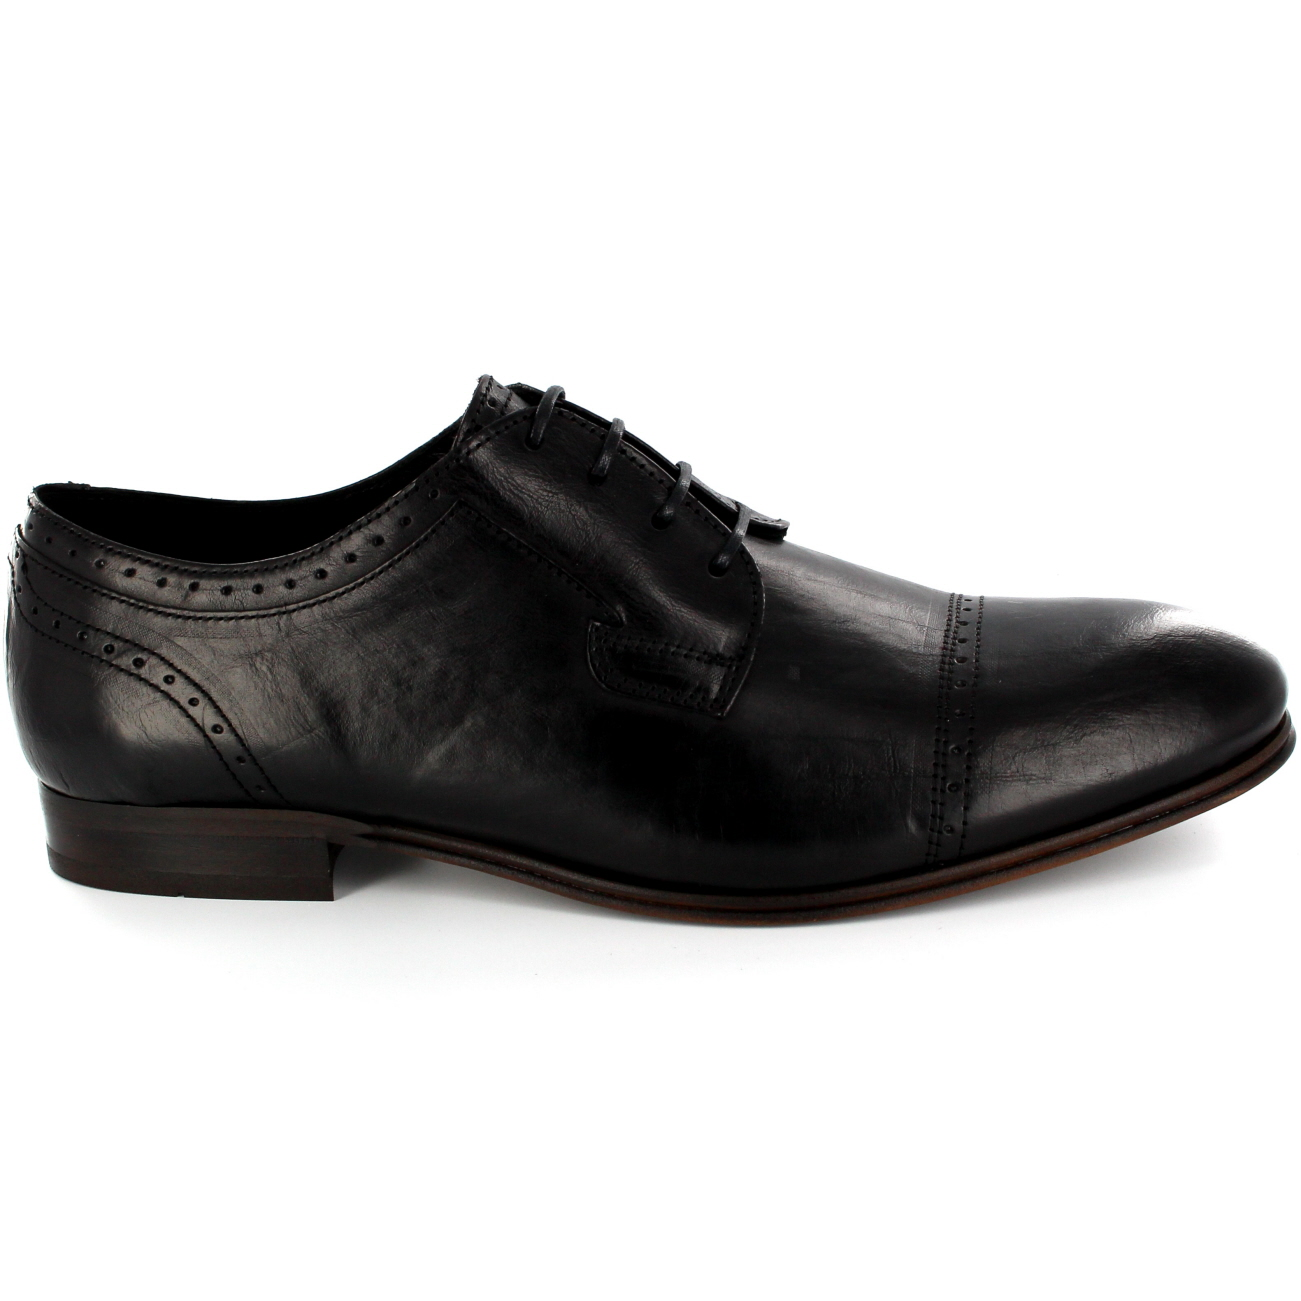 h by hudson shoe size guide